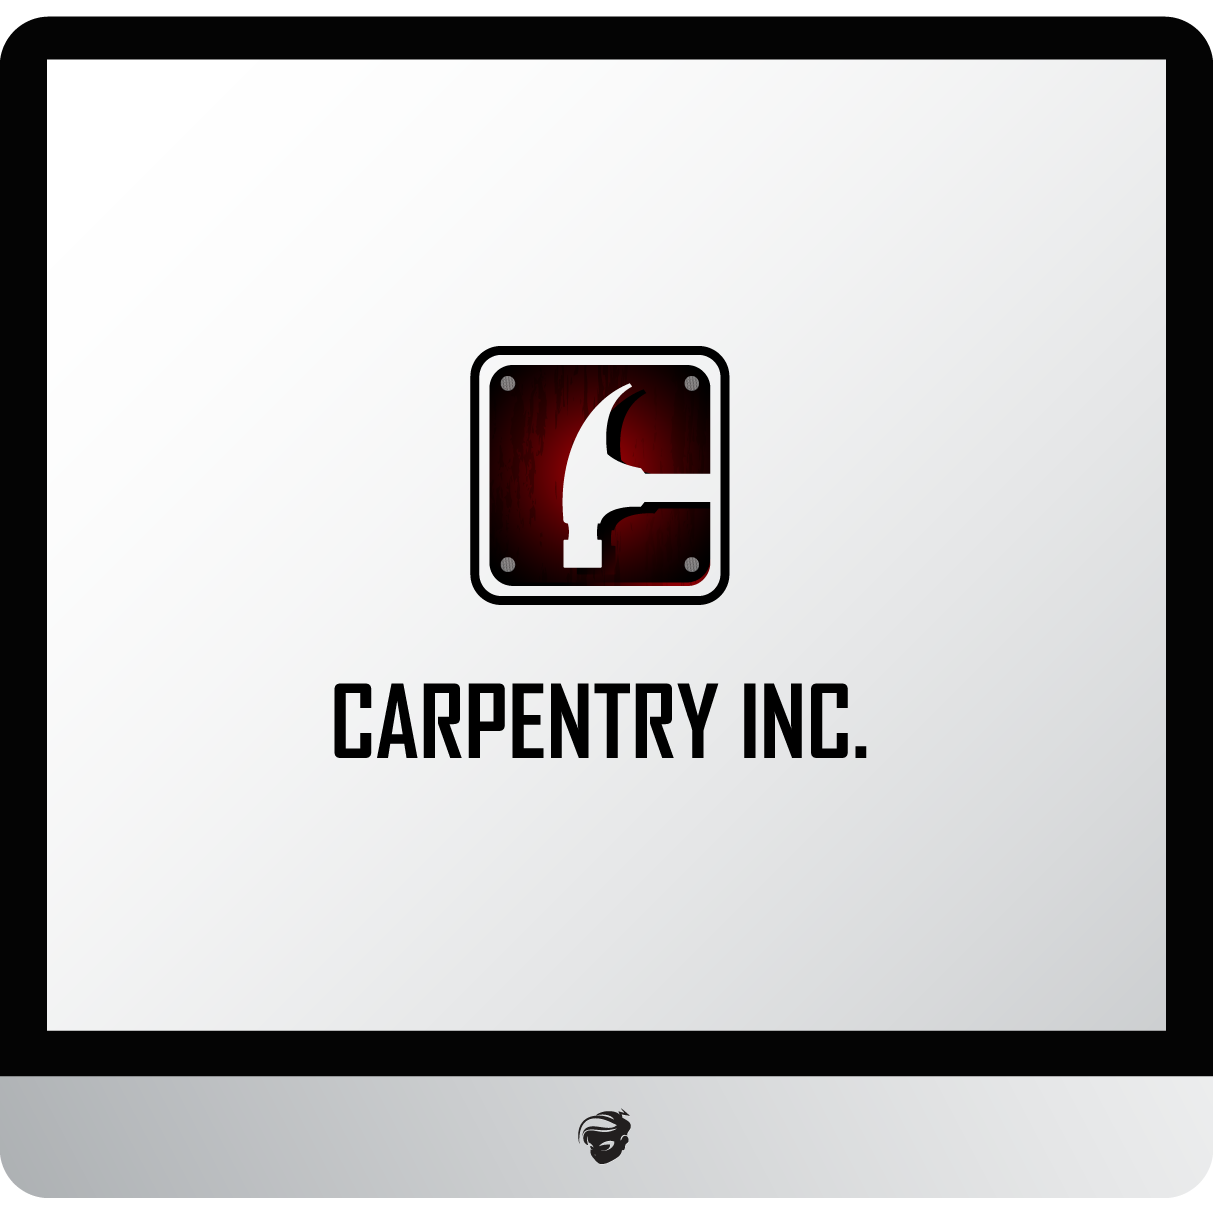 Logo Design by zesthar - Entry No. 18 in the Logo Design Contest Creative Logo Design for Carpentry inc..